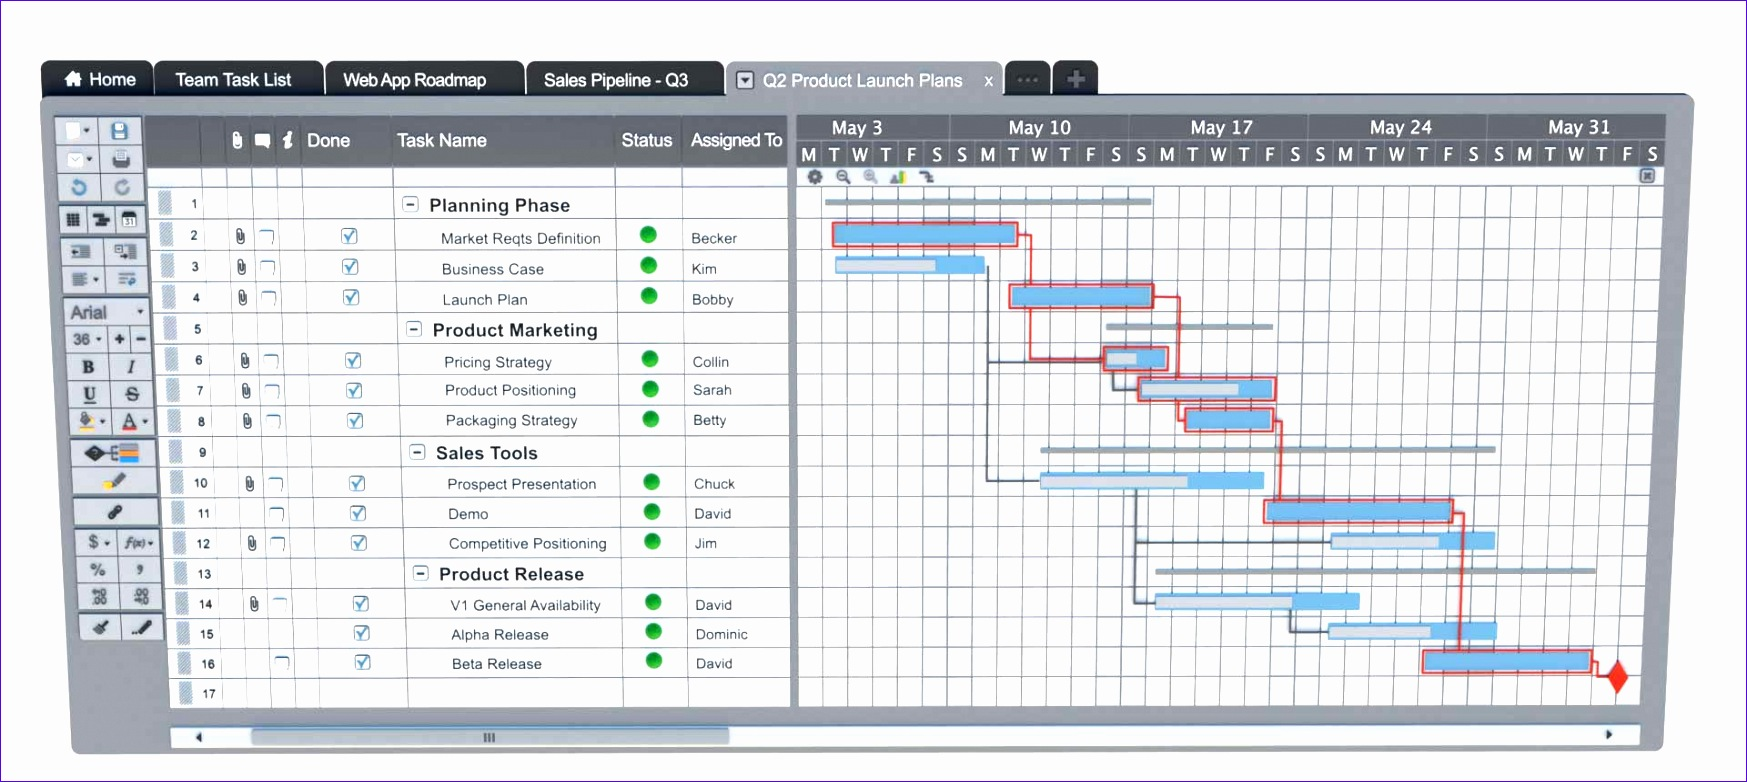 10 Project Manager Excel Template